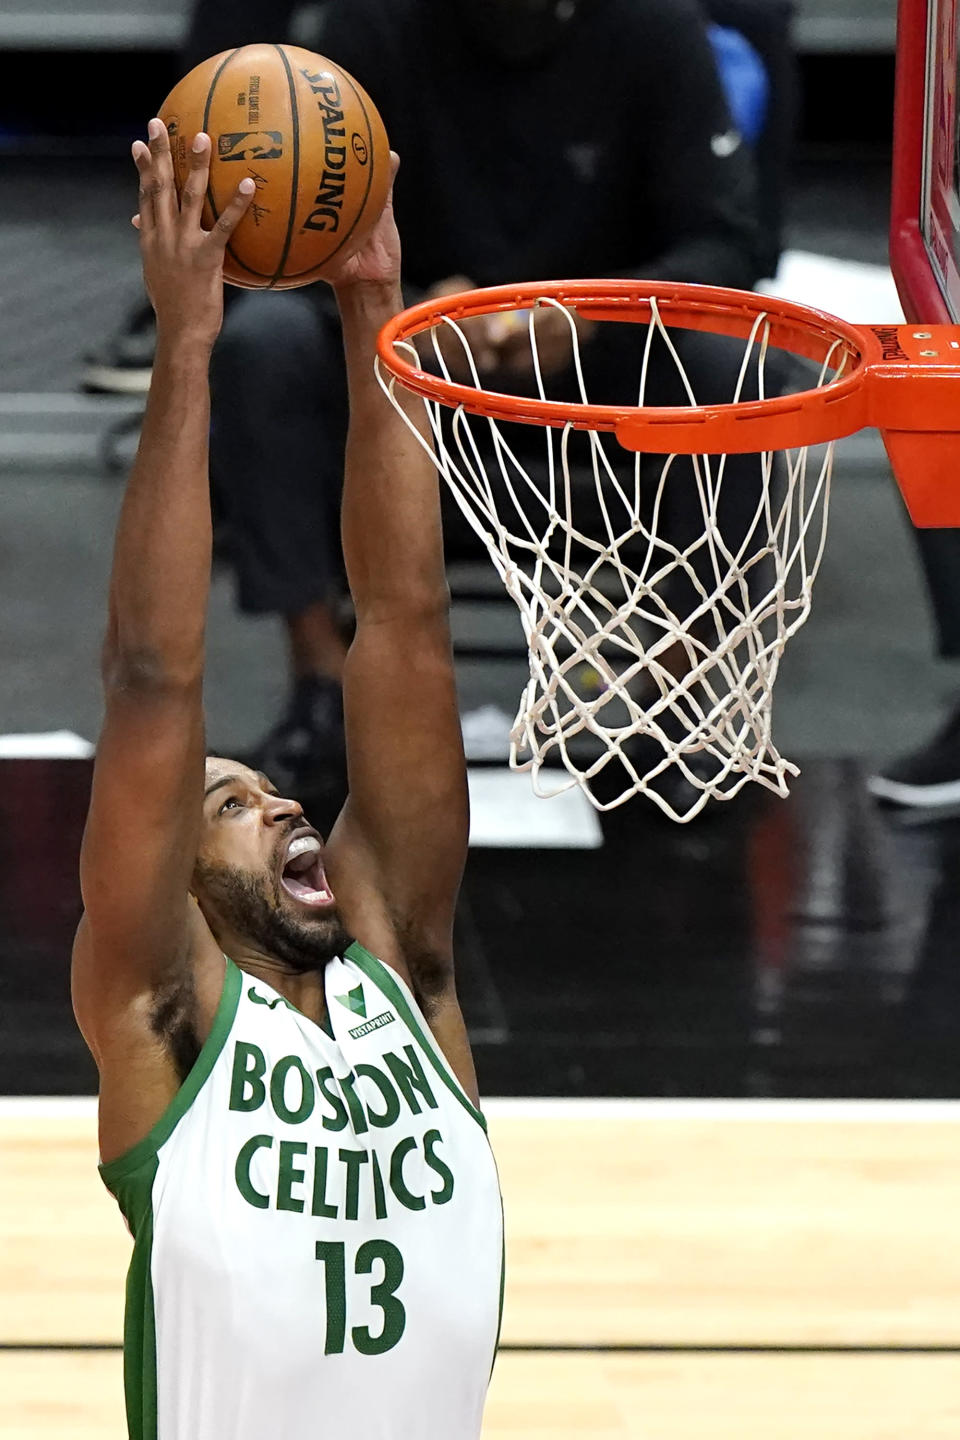 Boston Celtics center Tristan Thompson dunks against the Chicago Bulls during the first half of an NBA basketball game in Chicago, Friday, May 7, 2021. (AP Photo/Nam Y. Huh)